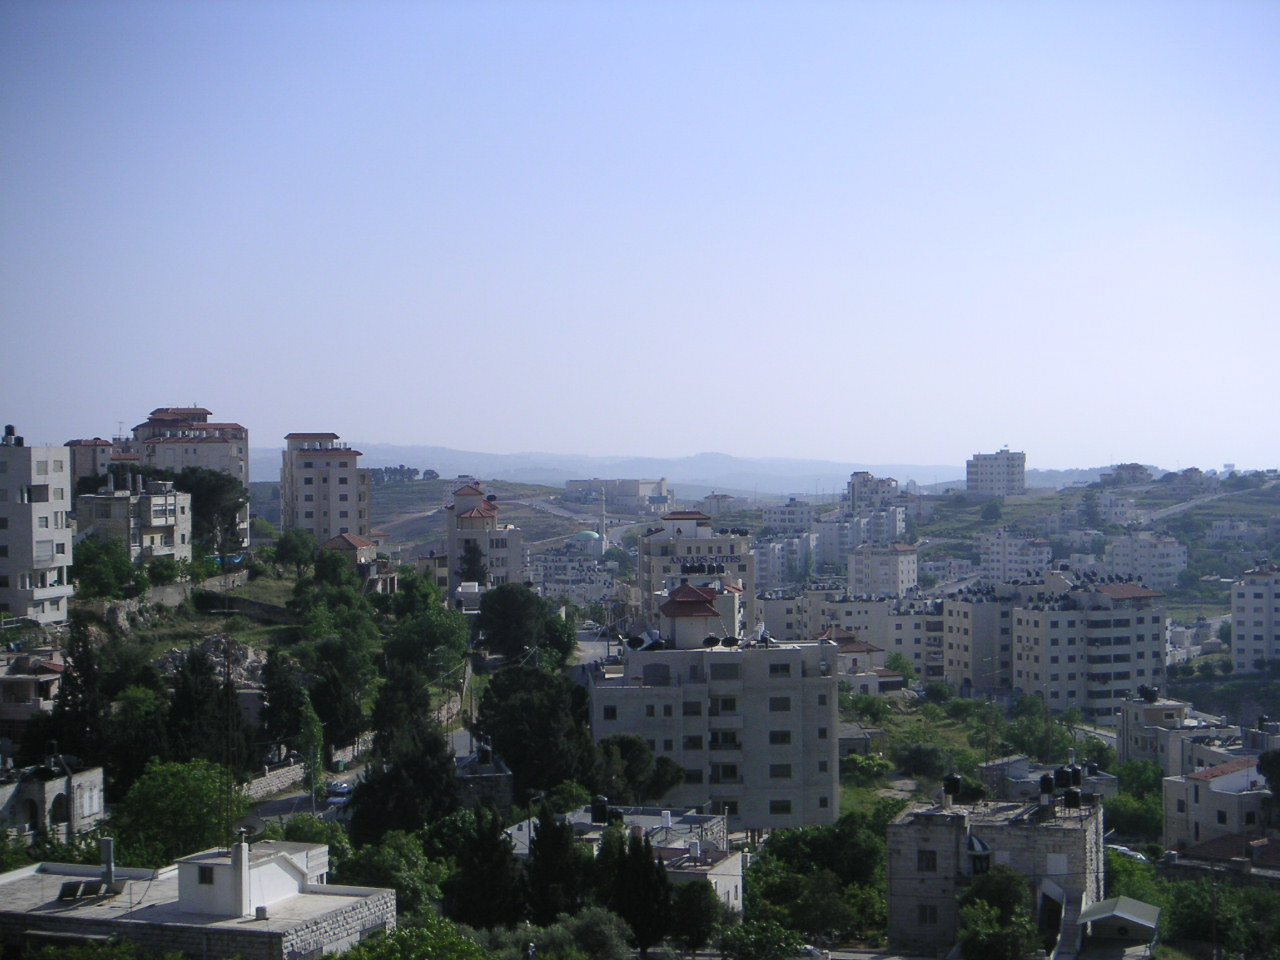 http://upload.wikimedia.org/wikipedia/commons/8/81/Ramallah4.JPG